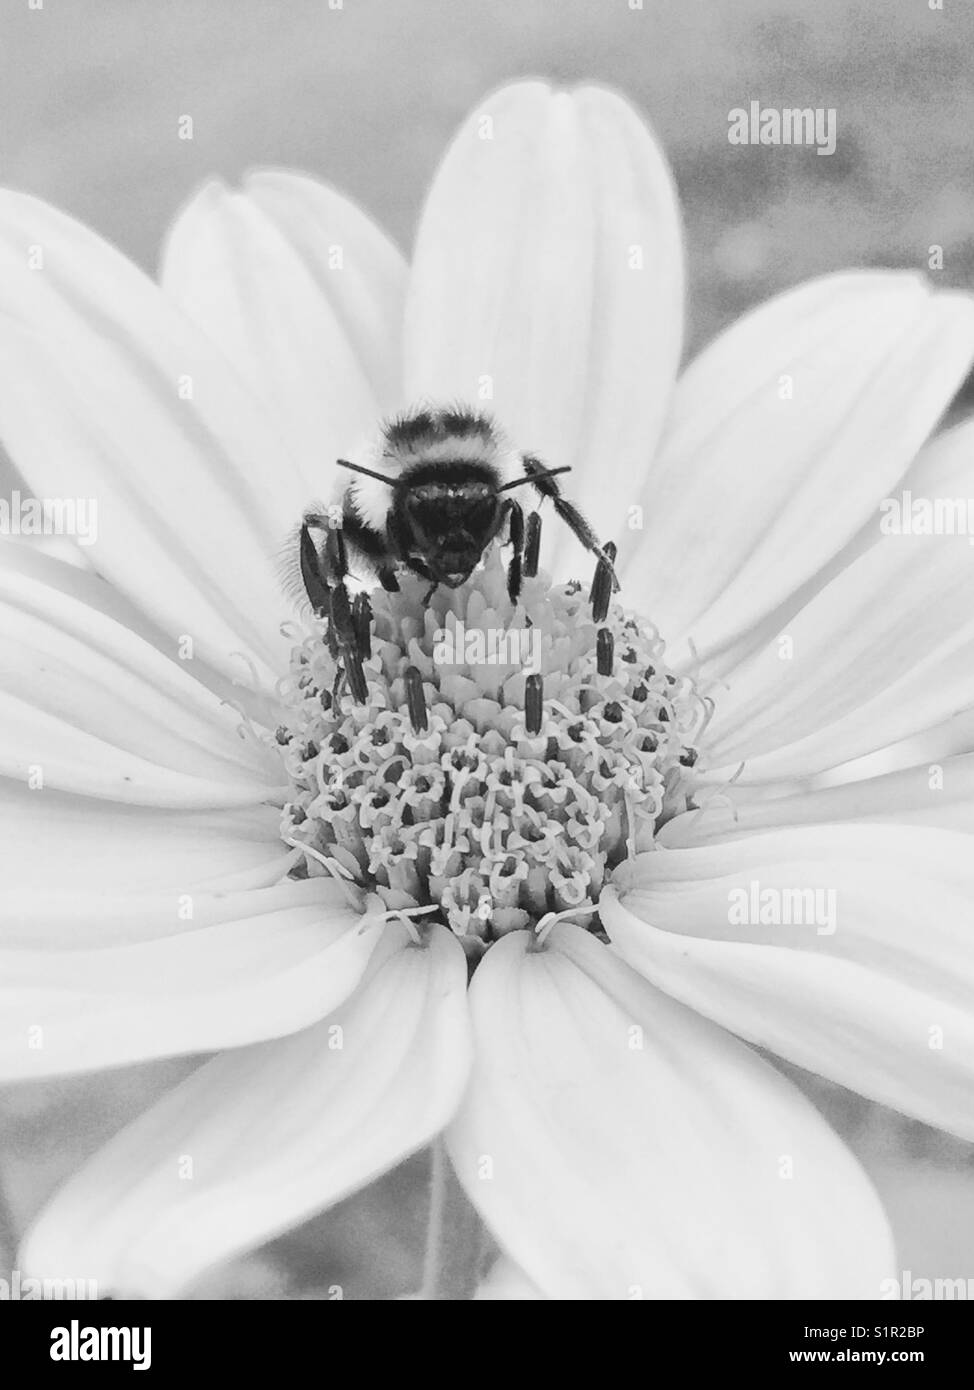 Bees pollinate Cosmos Flower. Shot in black n white. - Stock Image